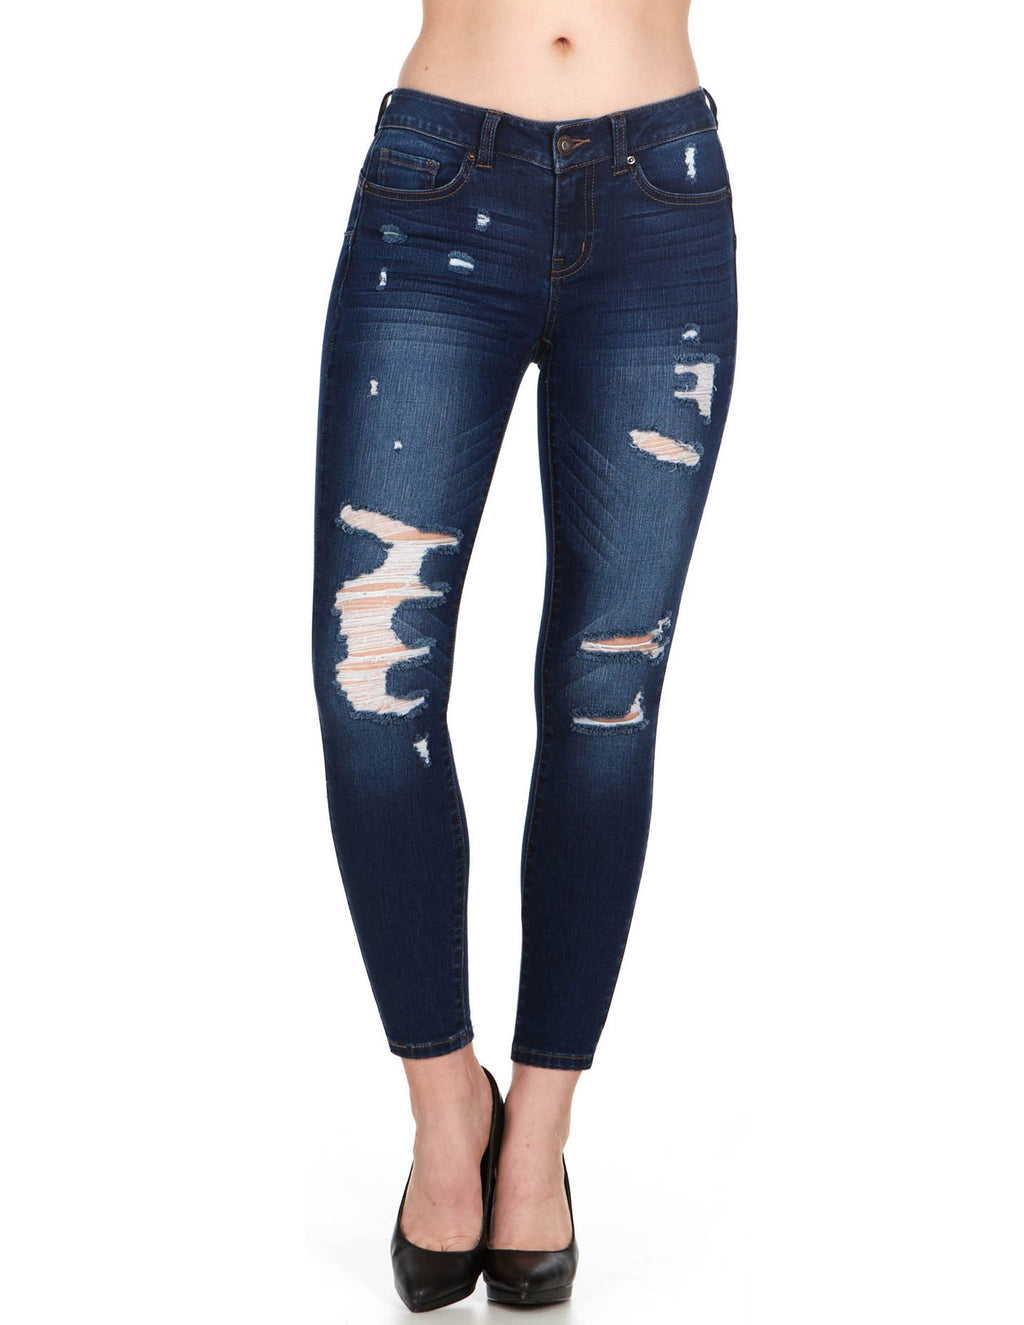 ELITE JEANS Juniors Mid Rise Push-up Distressed Skinny Jeans Women | Dark Wash (P19384)